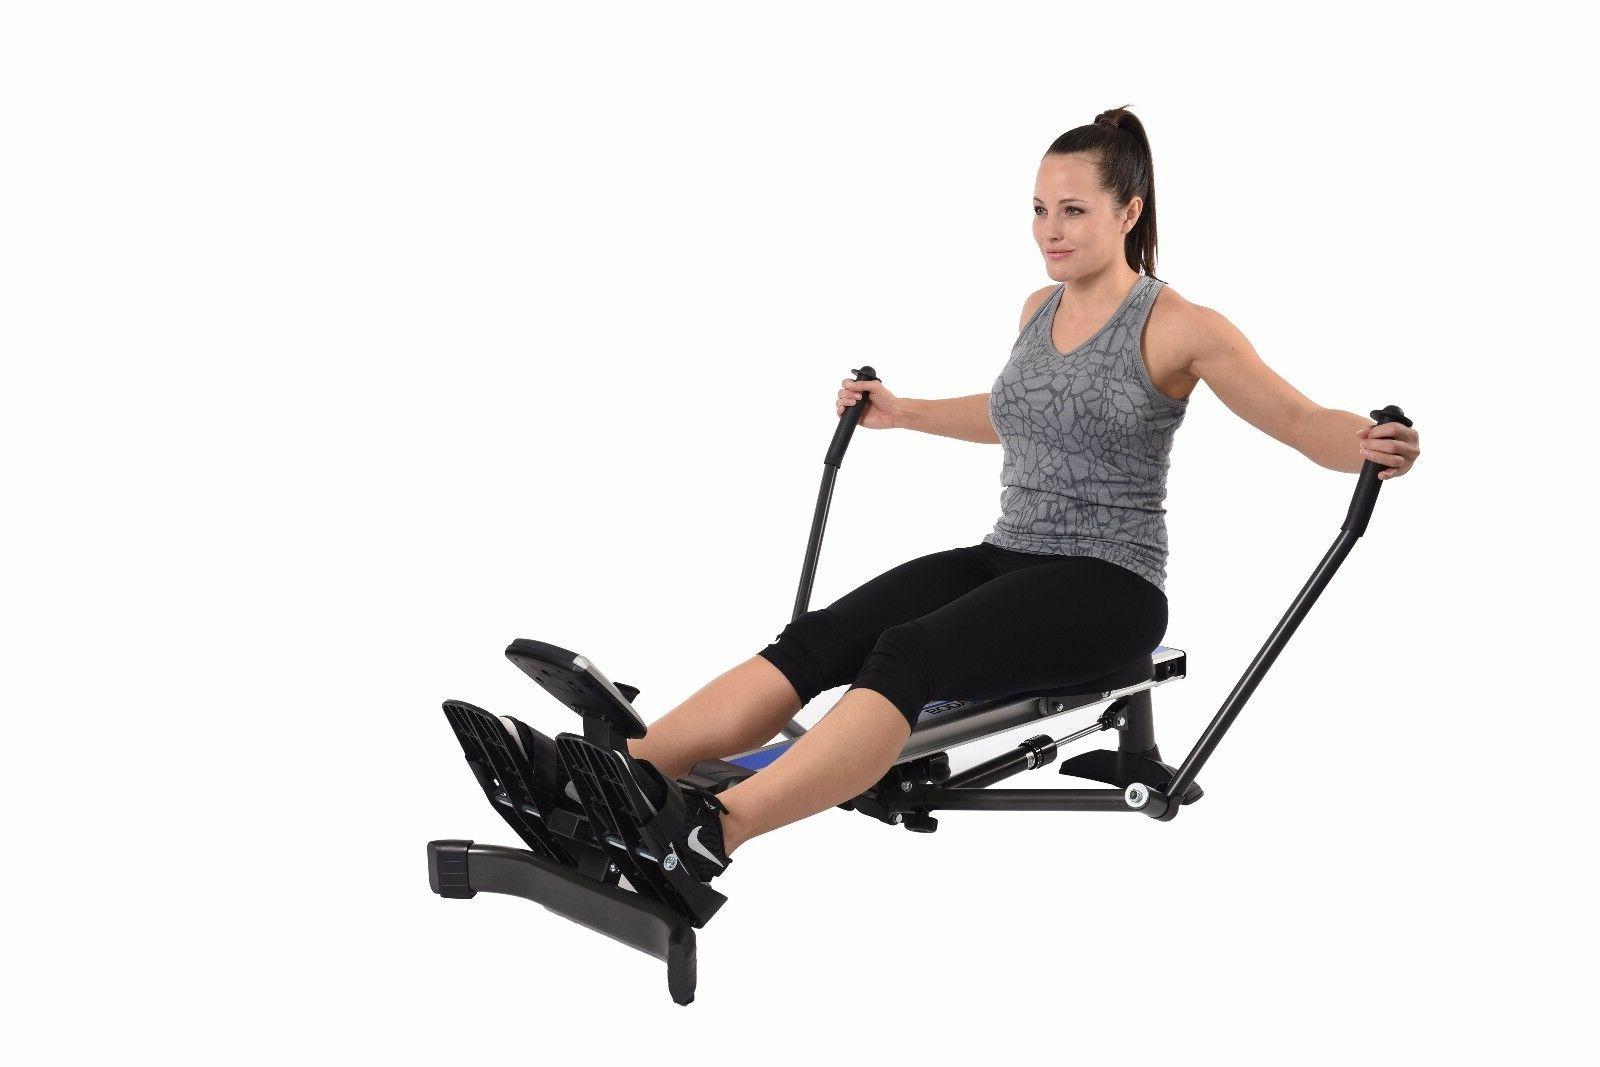 bodytrac glider rower exercise rowing machine 35